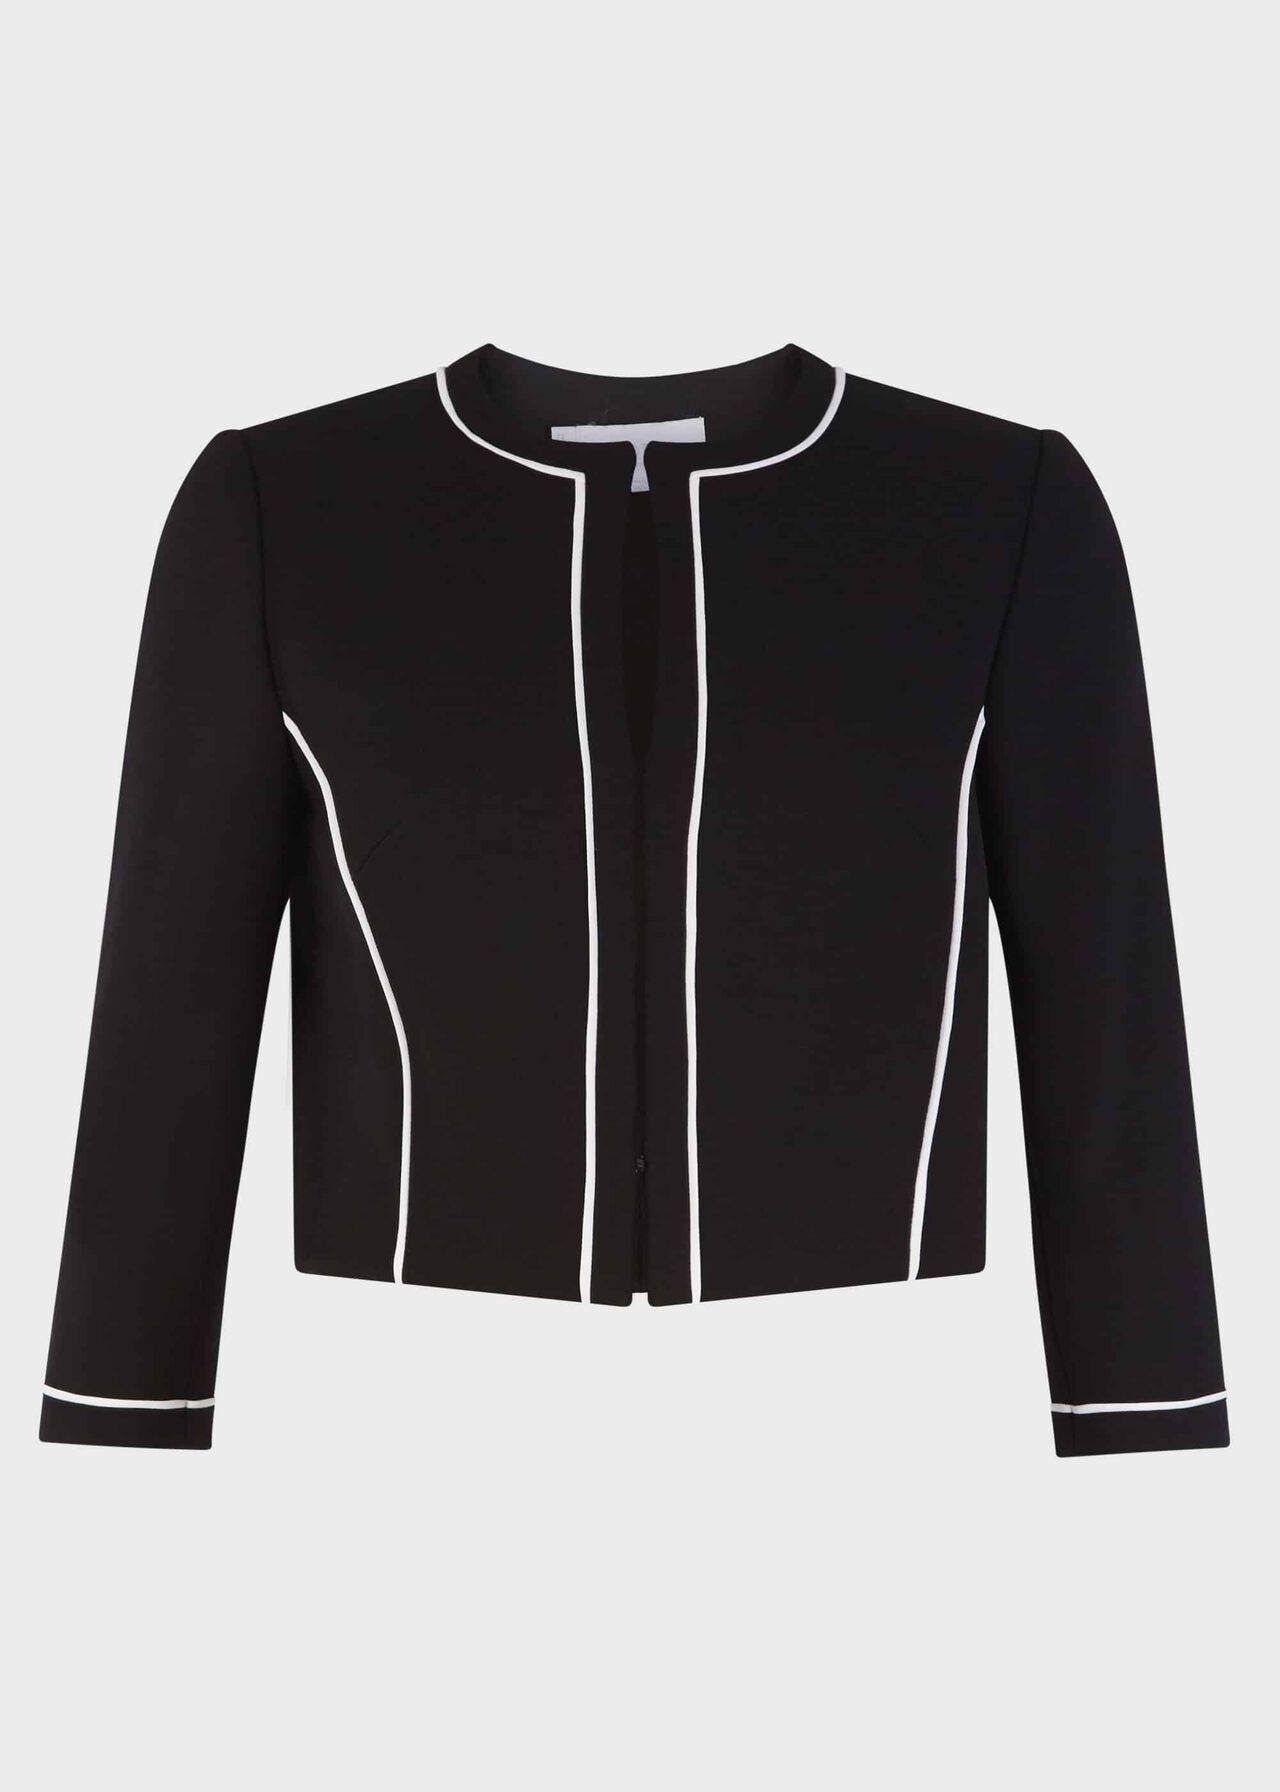 Cordelia Jacket Black Ivory